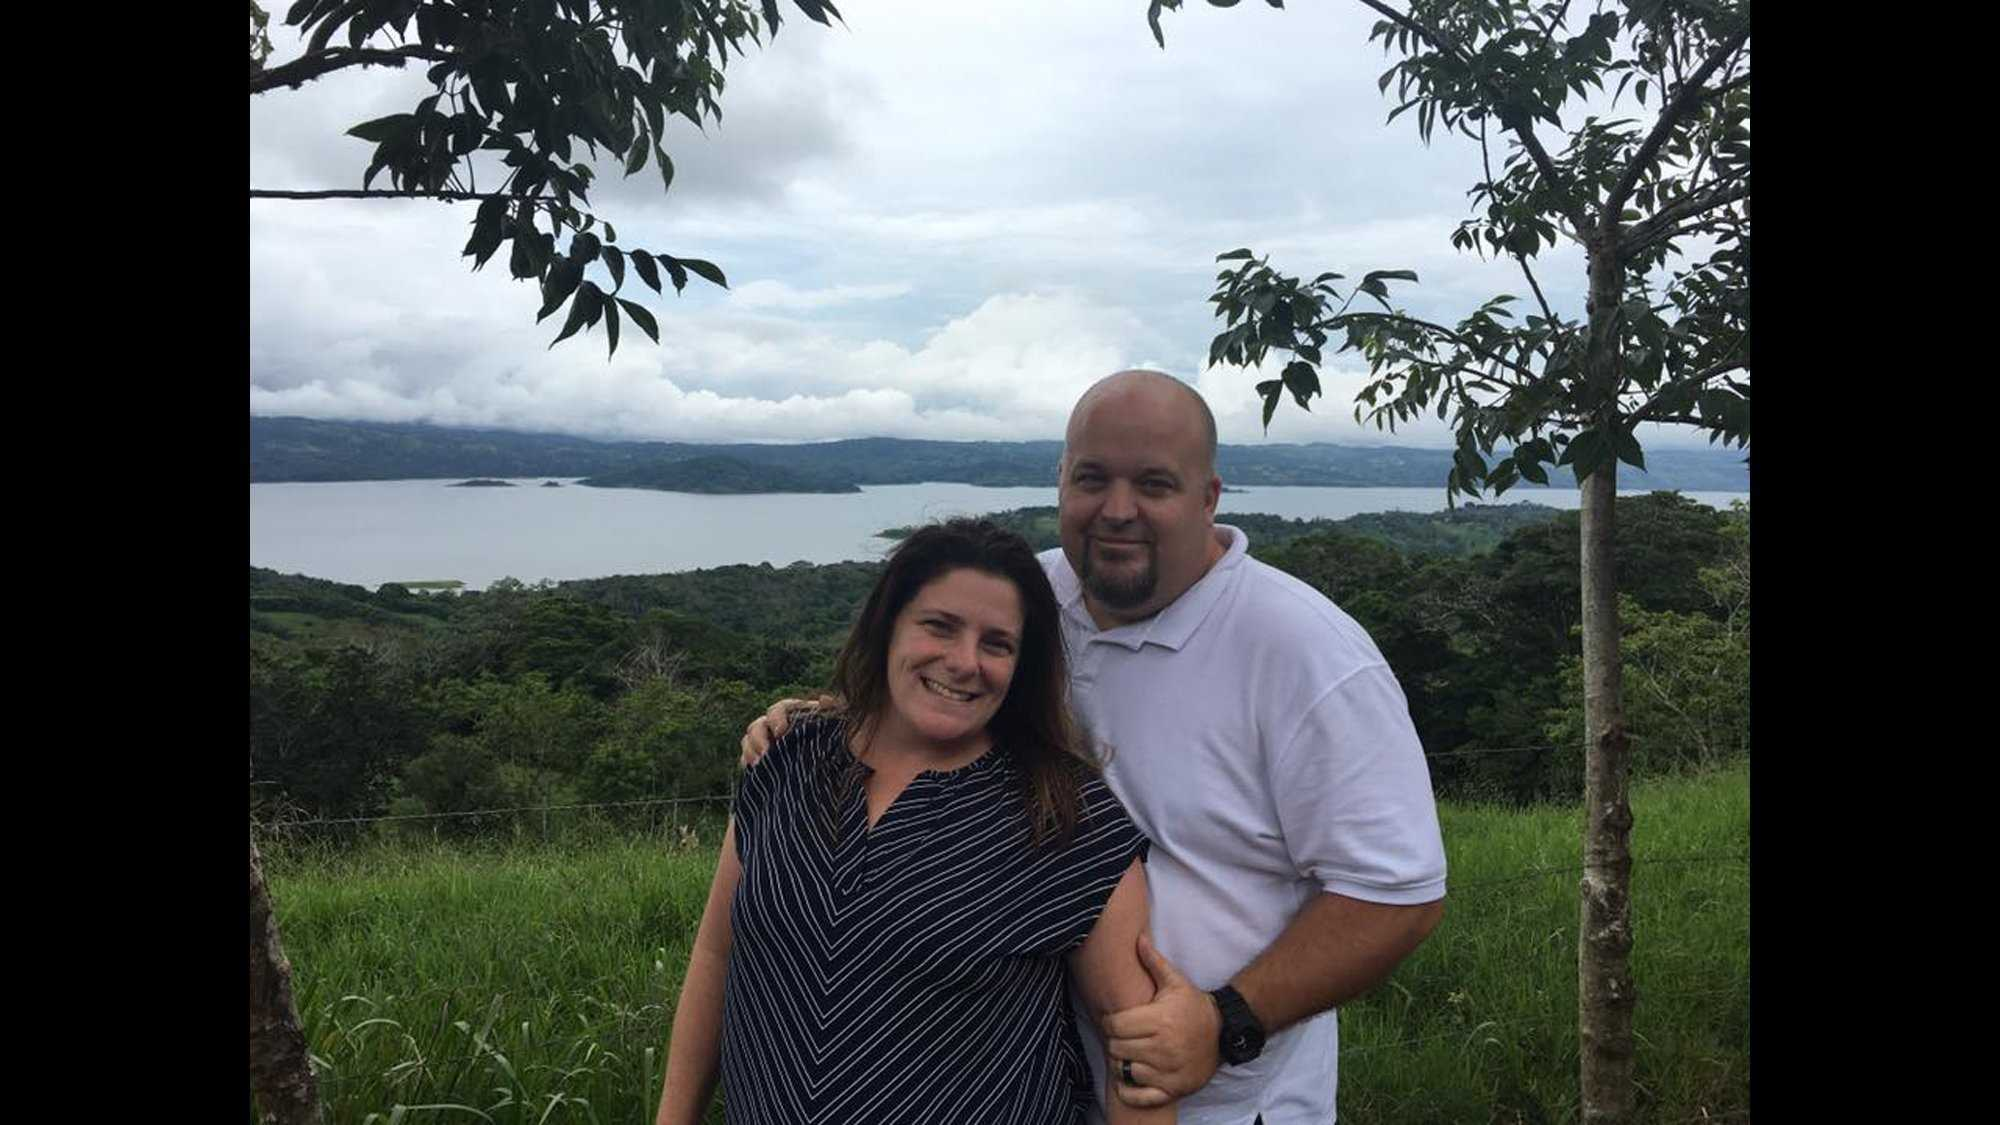 Jenny Swarers and Dustin Morgan have planned and canceled three weddings